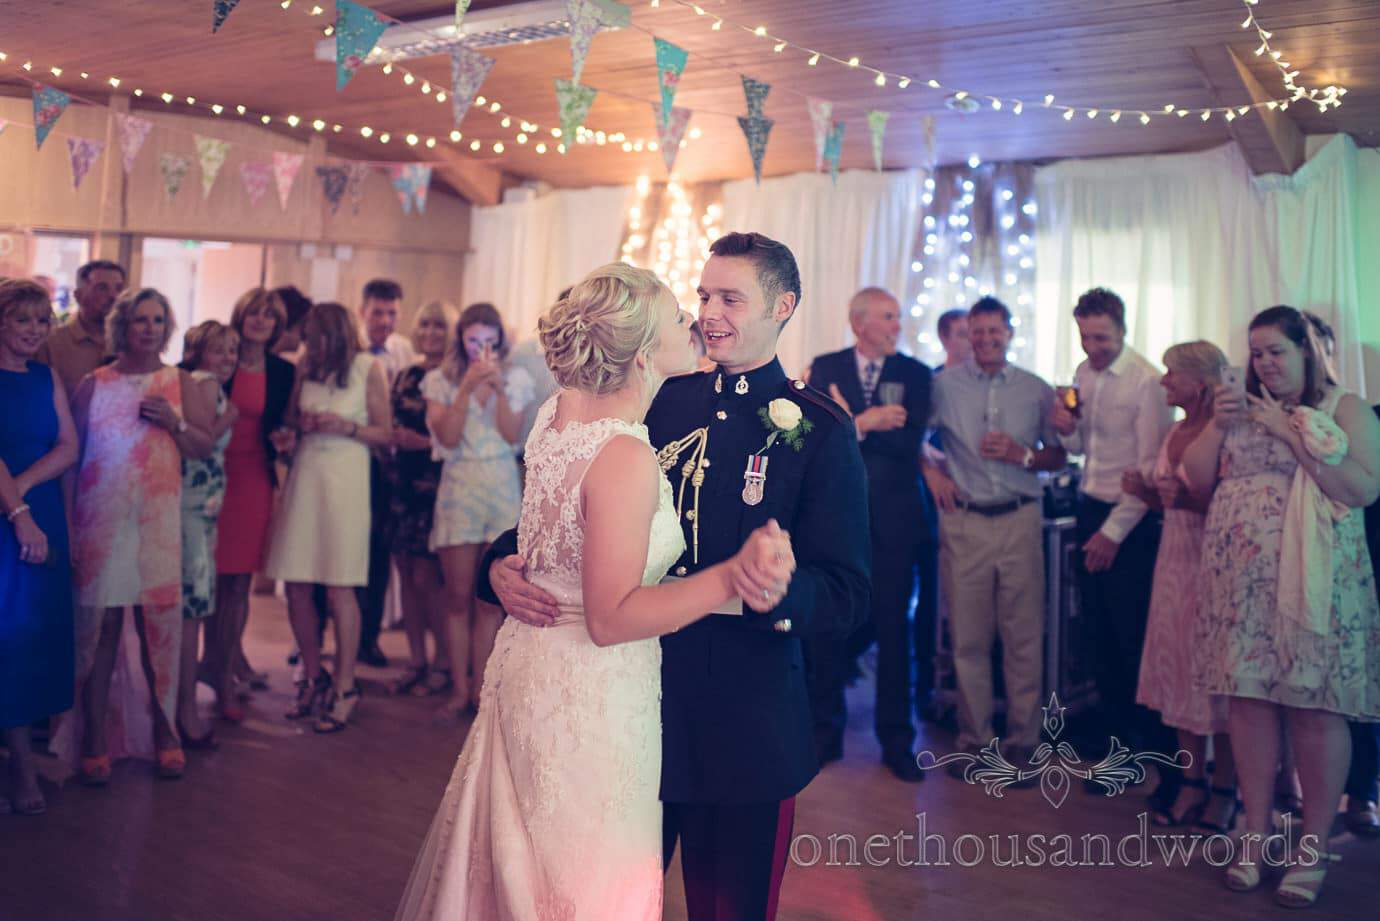 Bride and groom in military uniform dance first dance under bunting and fairy lights